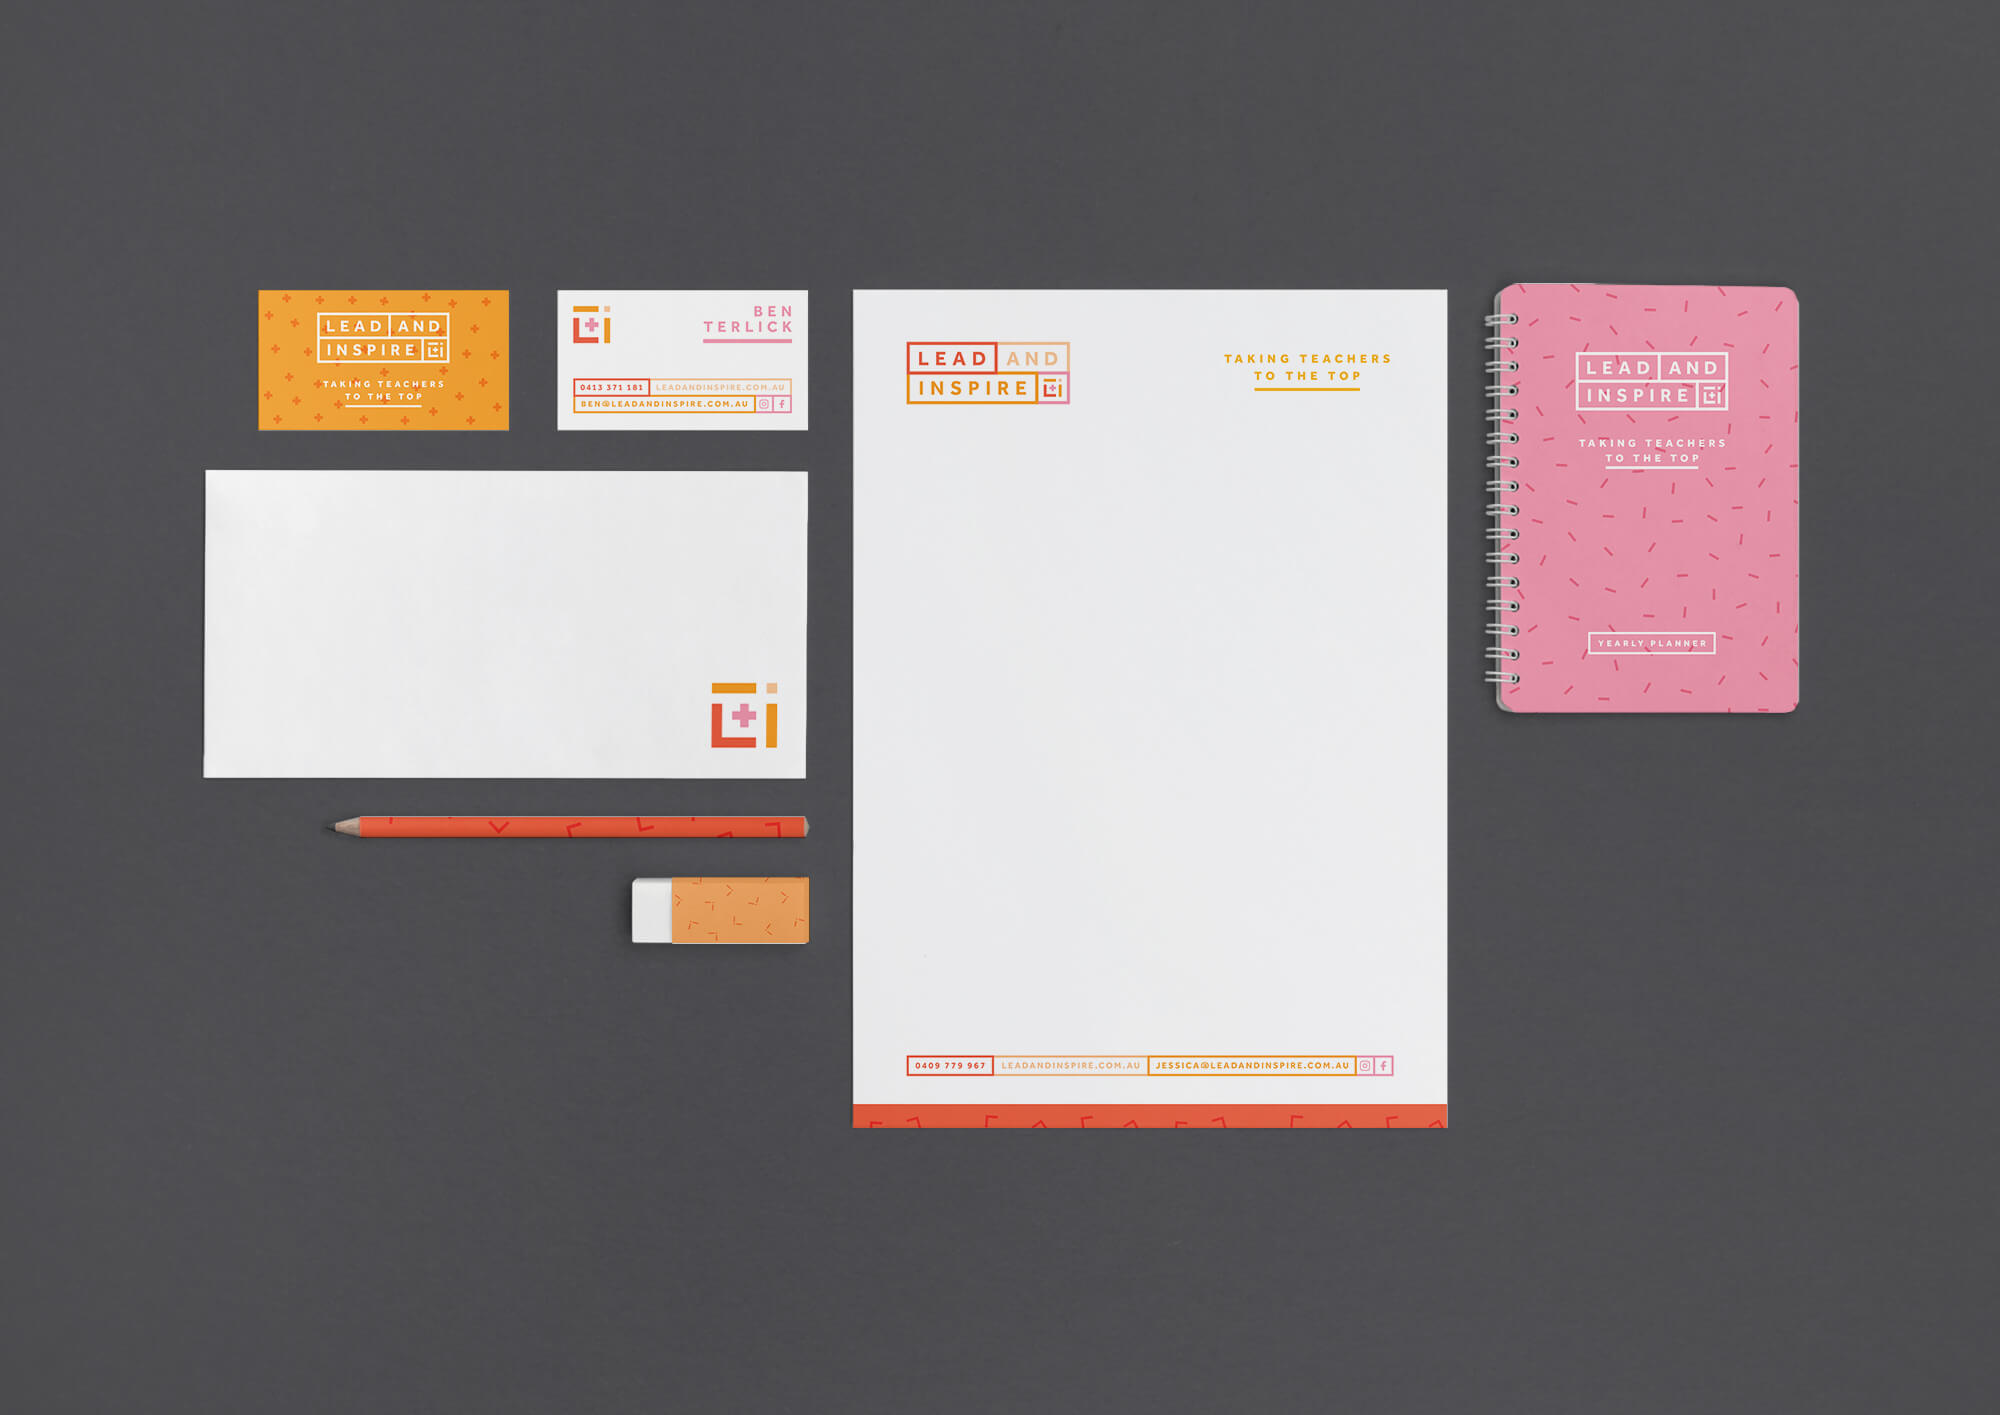 Lead and inspire stationary